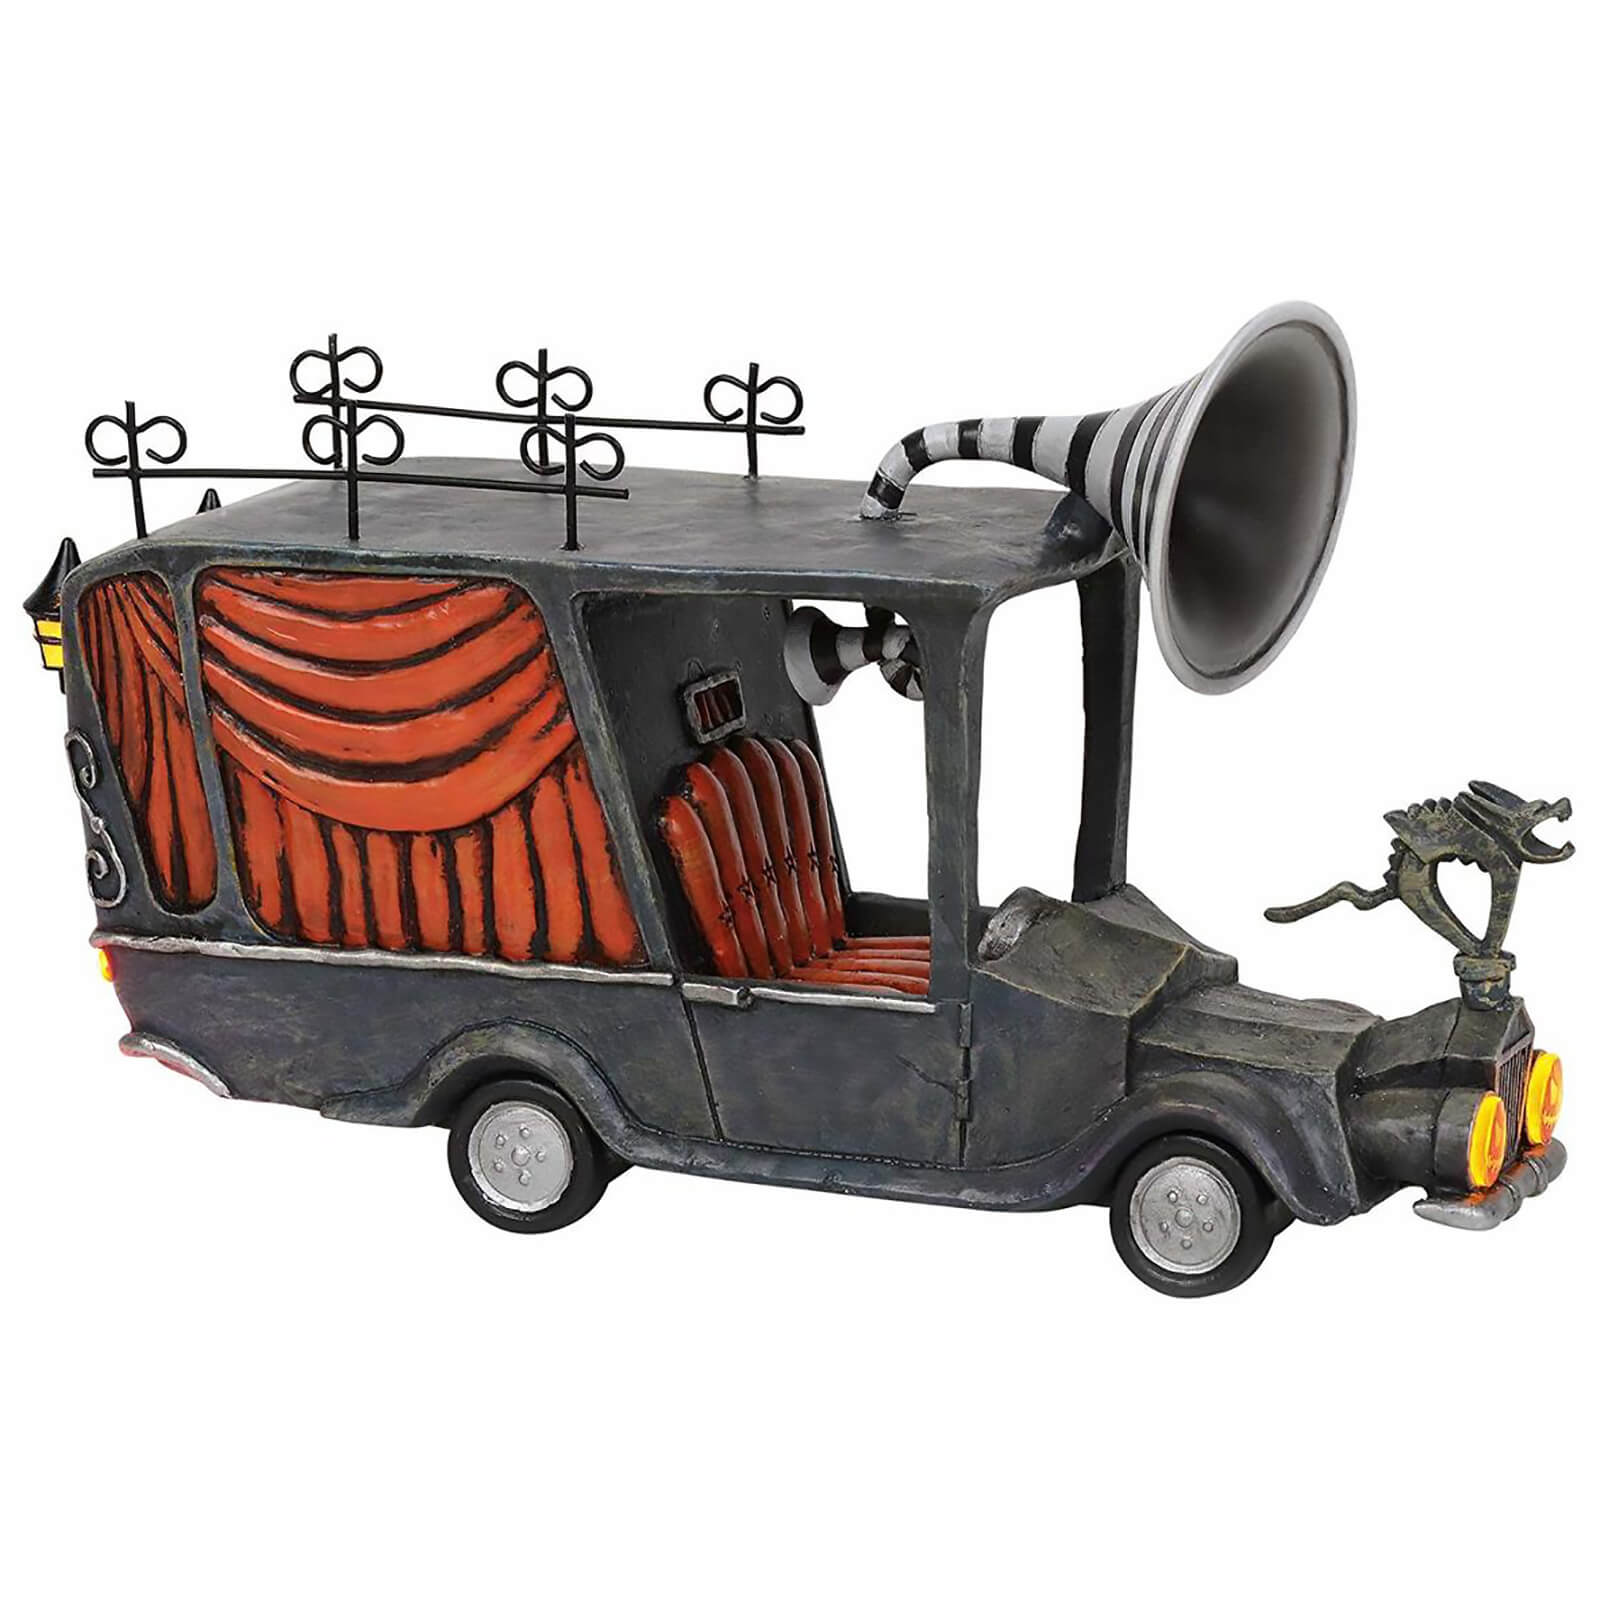 Image of The Nightmare Before Christmas Village The Mayor's Car 10.5cm